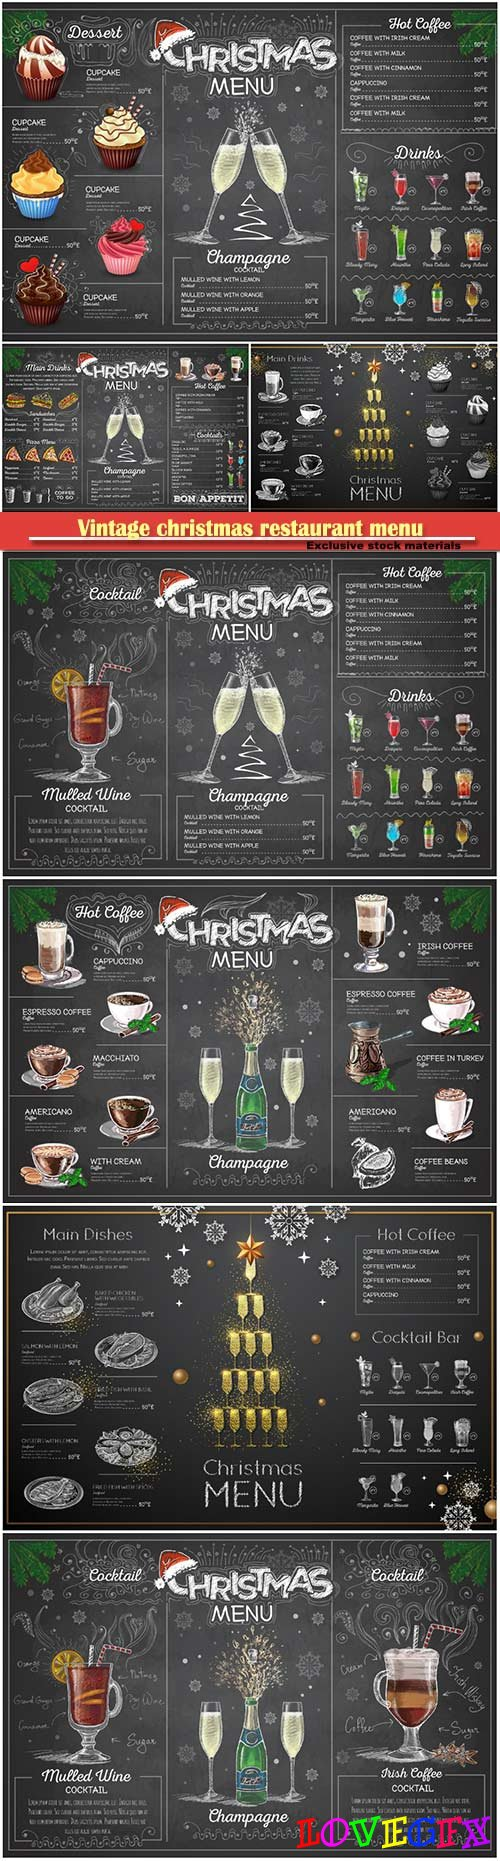 Vintage christmas restaurant menu design with champange